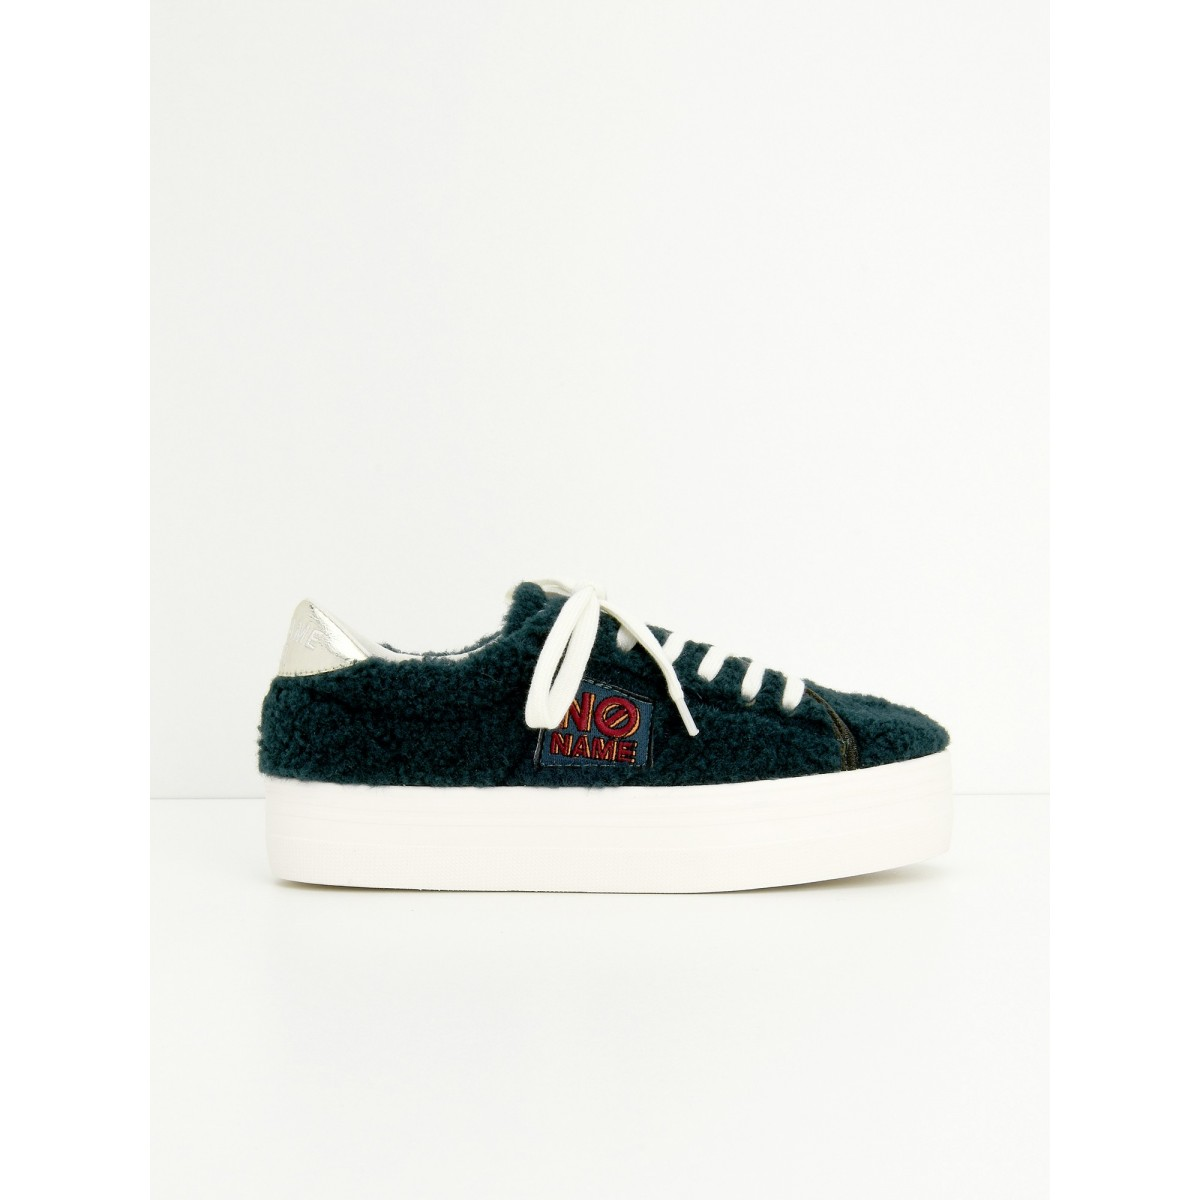 No Name PLATO SNEAKER - SHAUN/PATCH - PAON/PAON